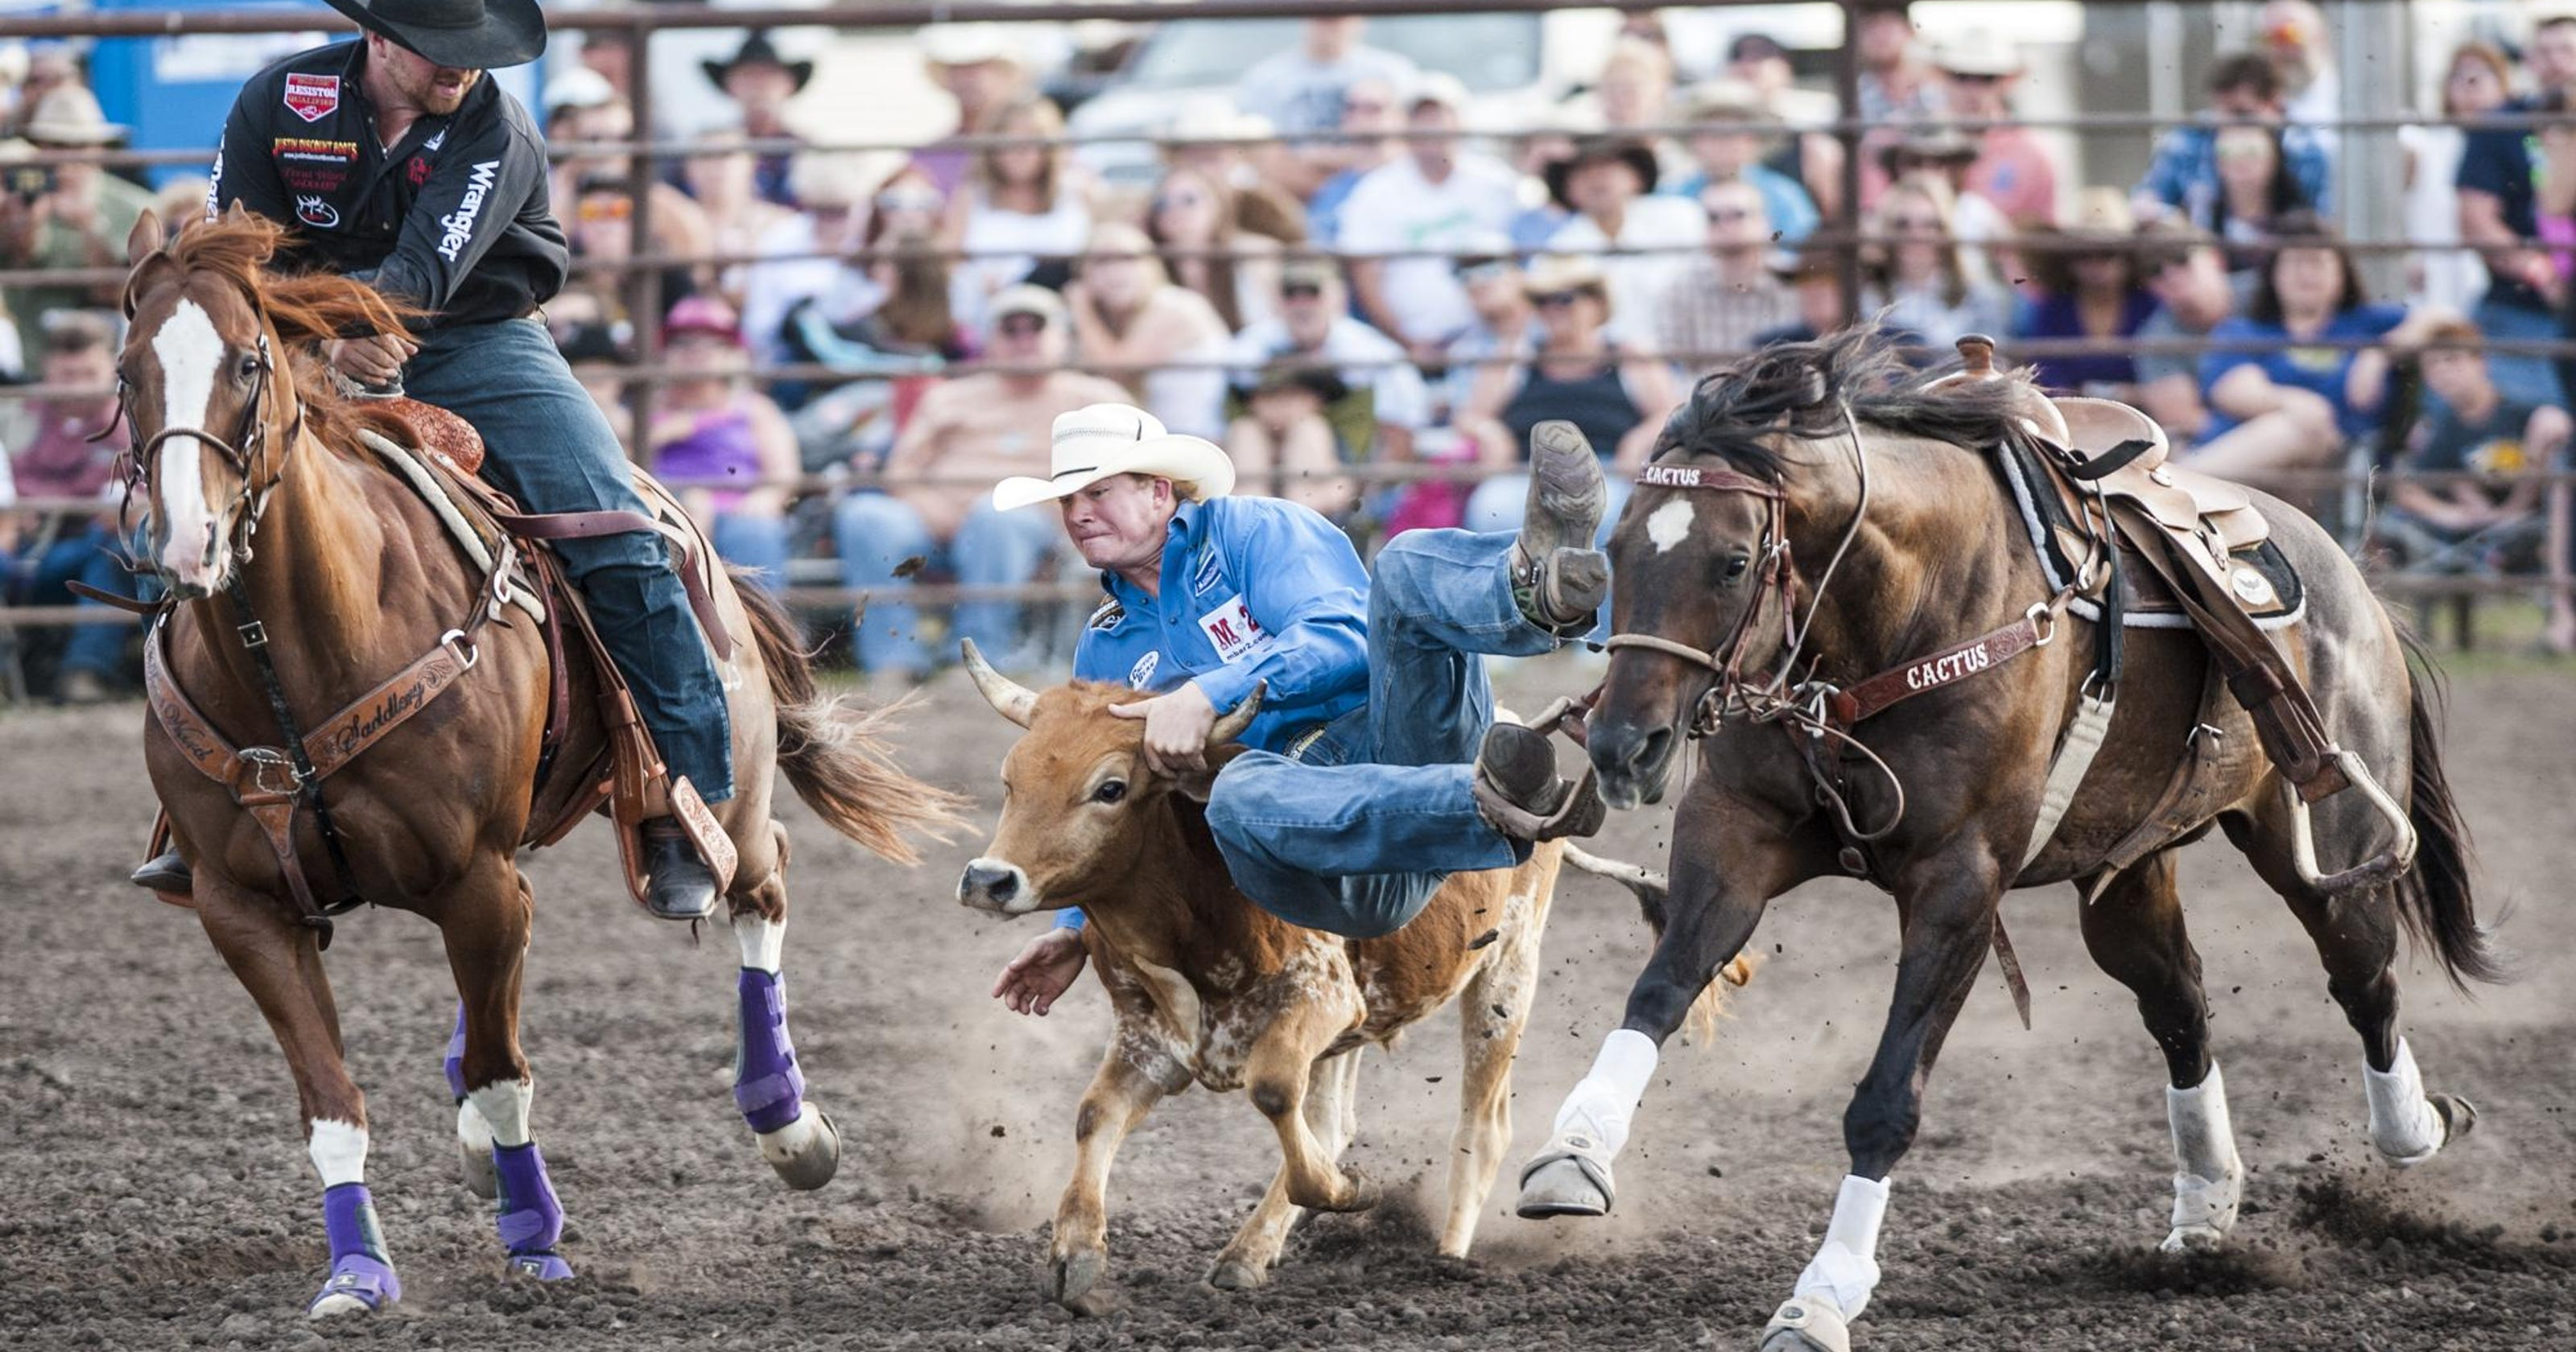 Helena's Ty Erickson flashes NFR form at Big Sky Pro Rodeo Roundup